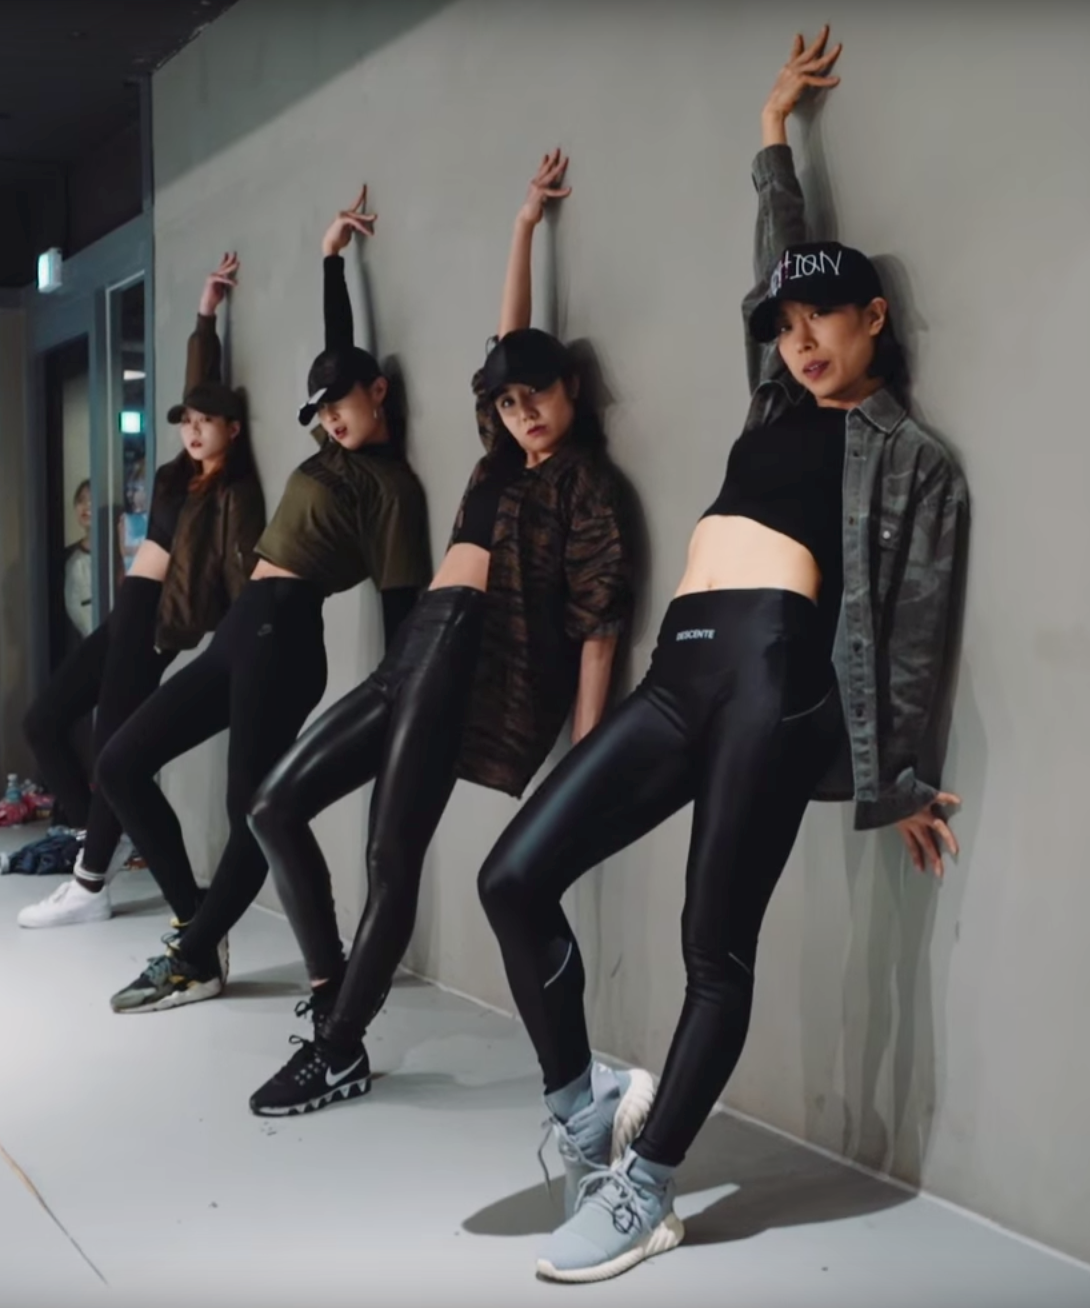 These K-Pop Dance Groups Straight Up Slay | Dance studio ...